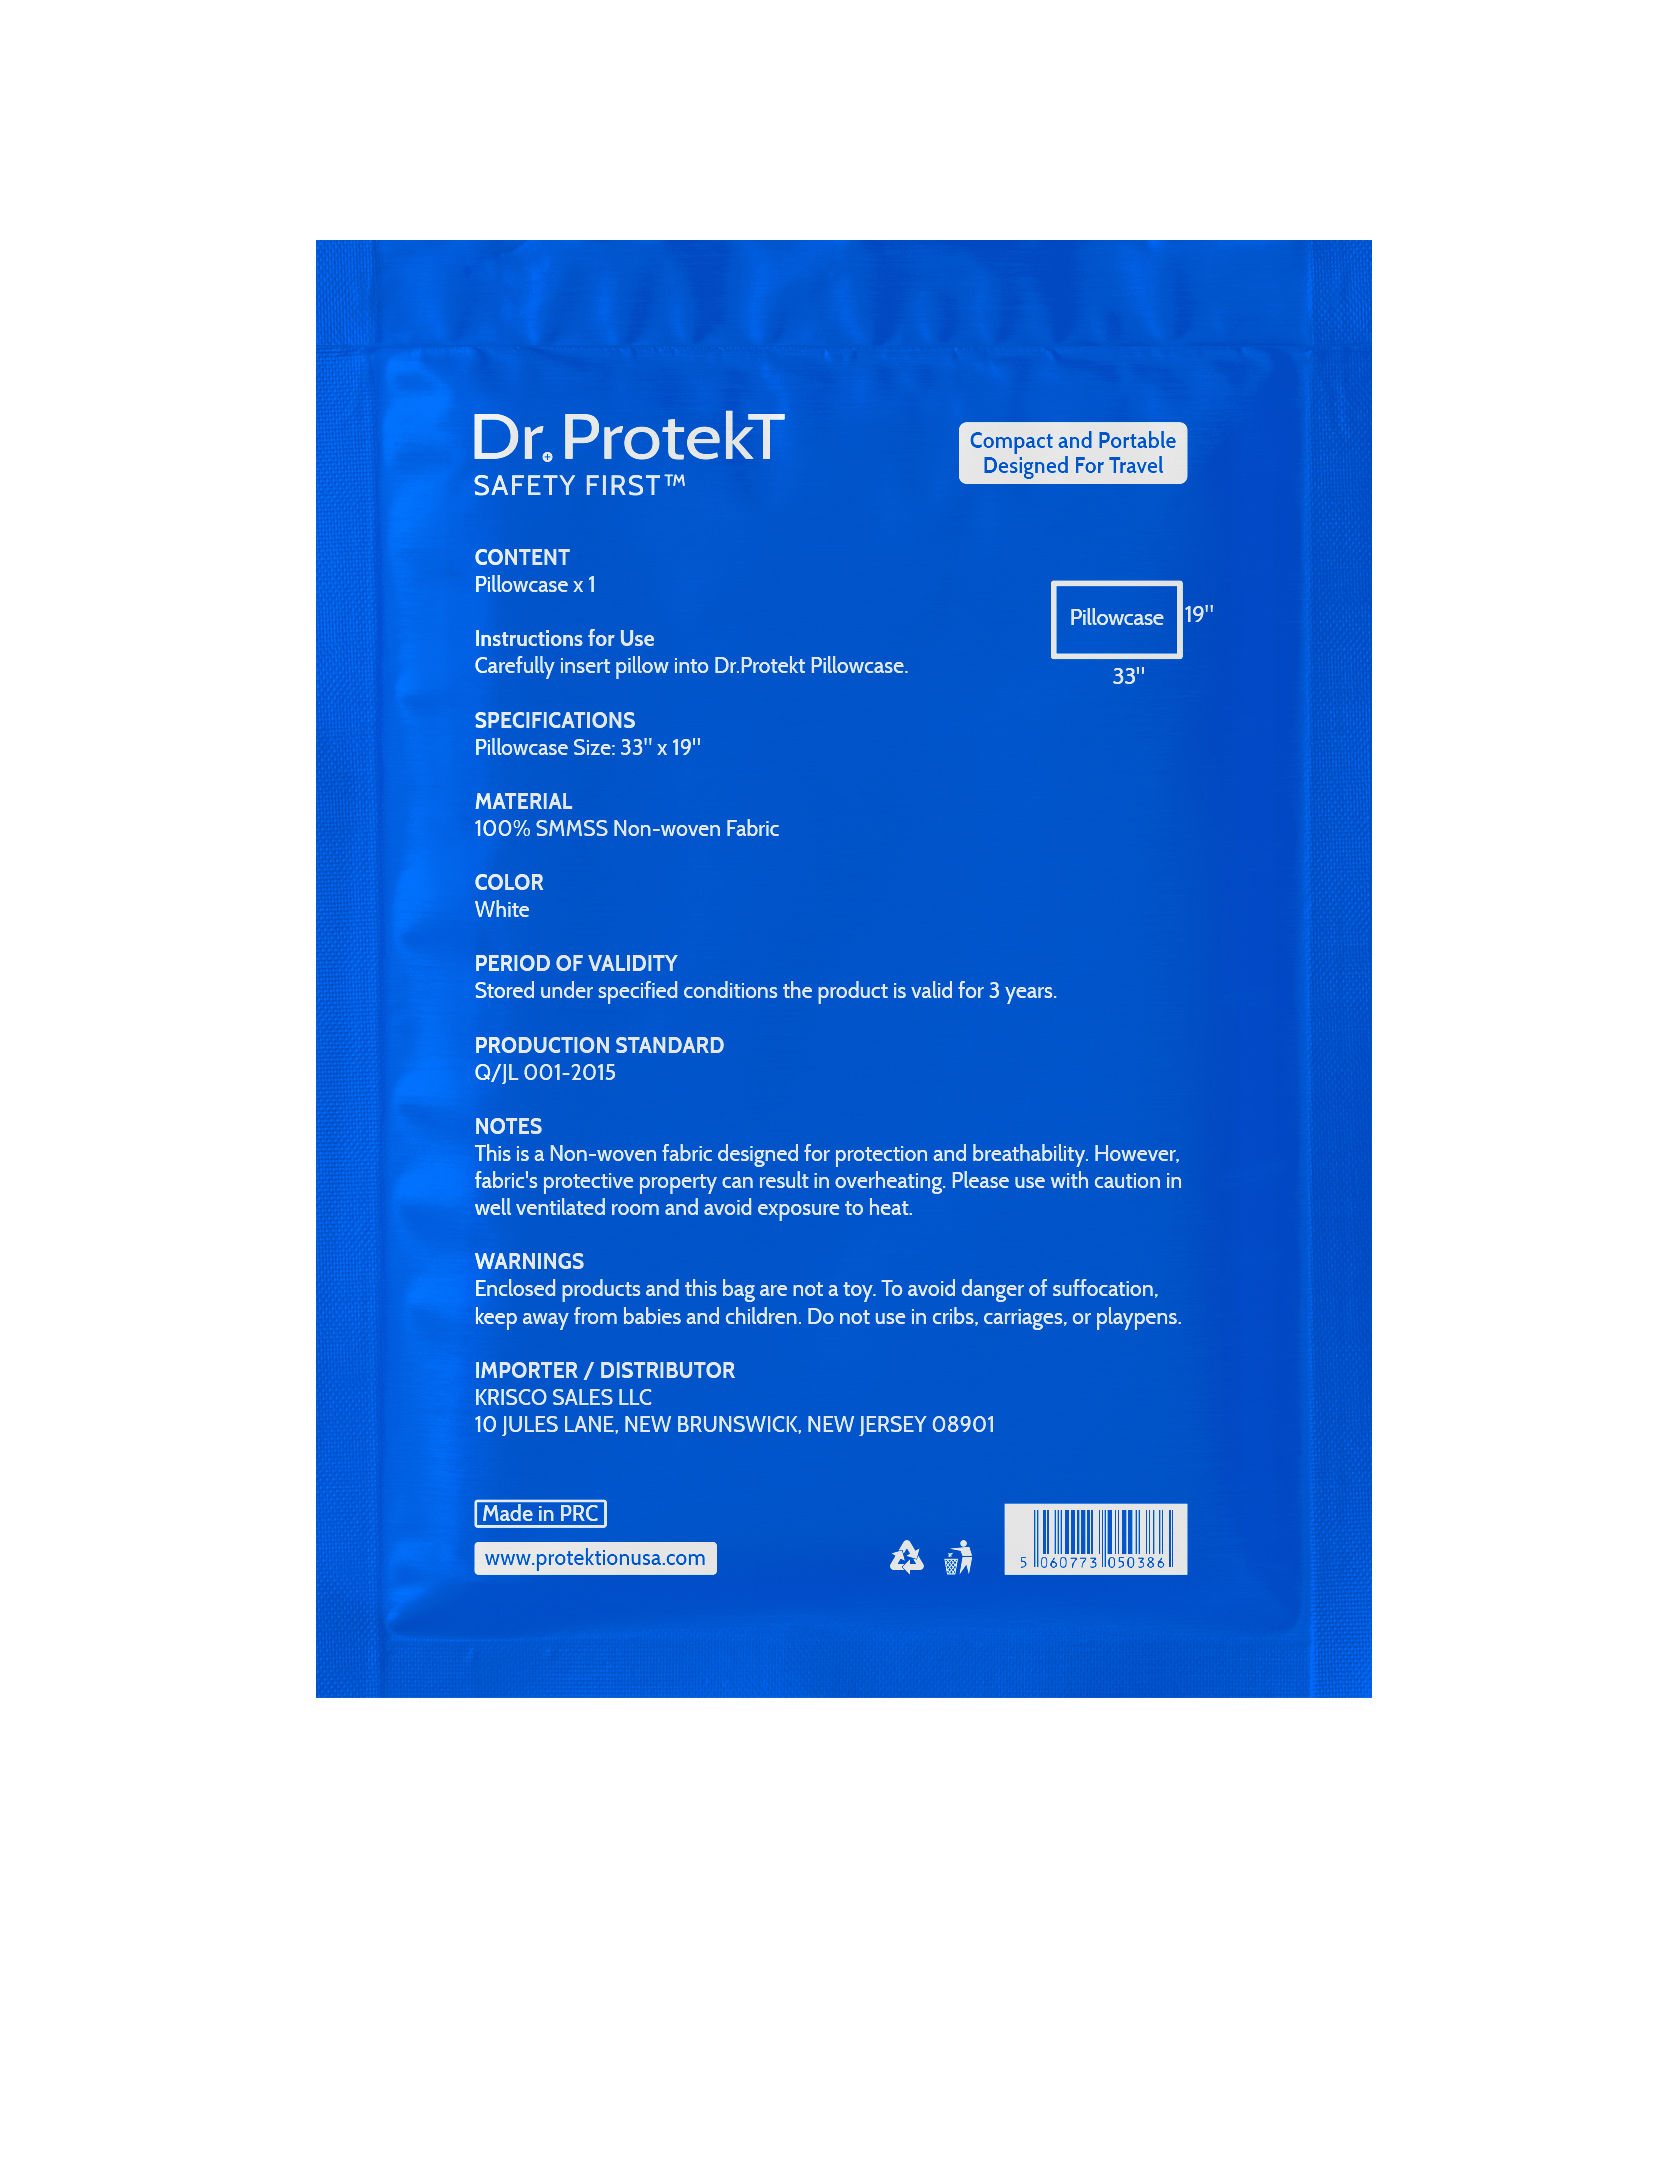 Dr. Protekt Safety First™ Travel Disposable Pillowcase